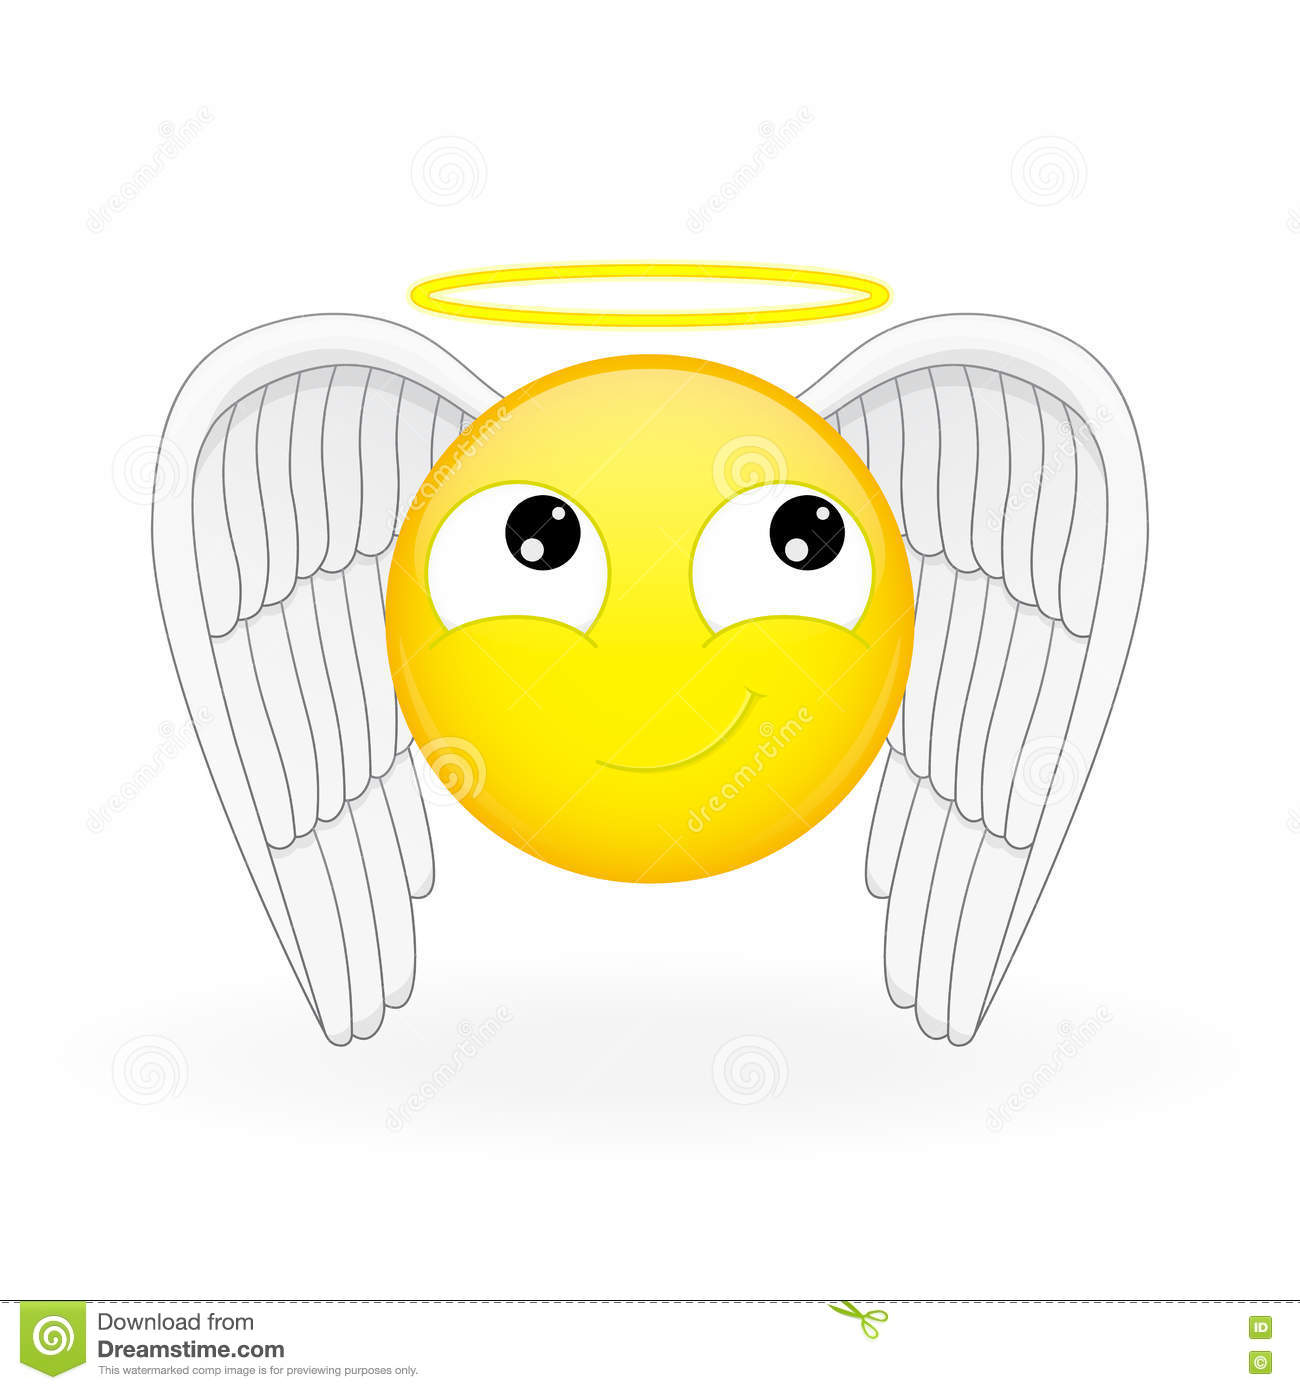 Emoticone Avec Des Ailes Et Nimbus Emoticone D Ange Emoticone Sainte Emoji Innocent Illustration De Vecteur Illustration Du Ailes Avec 76862738